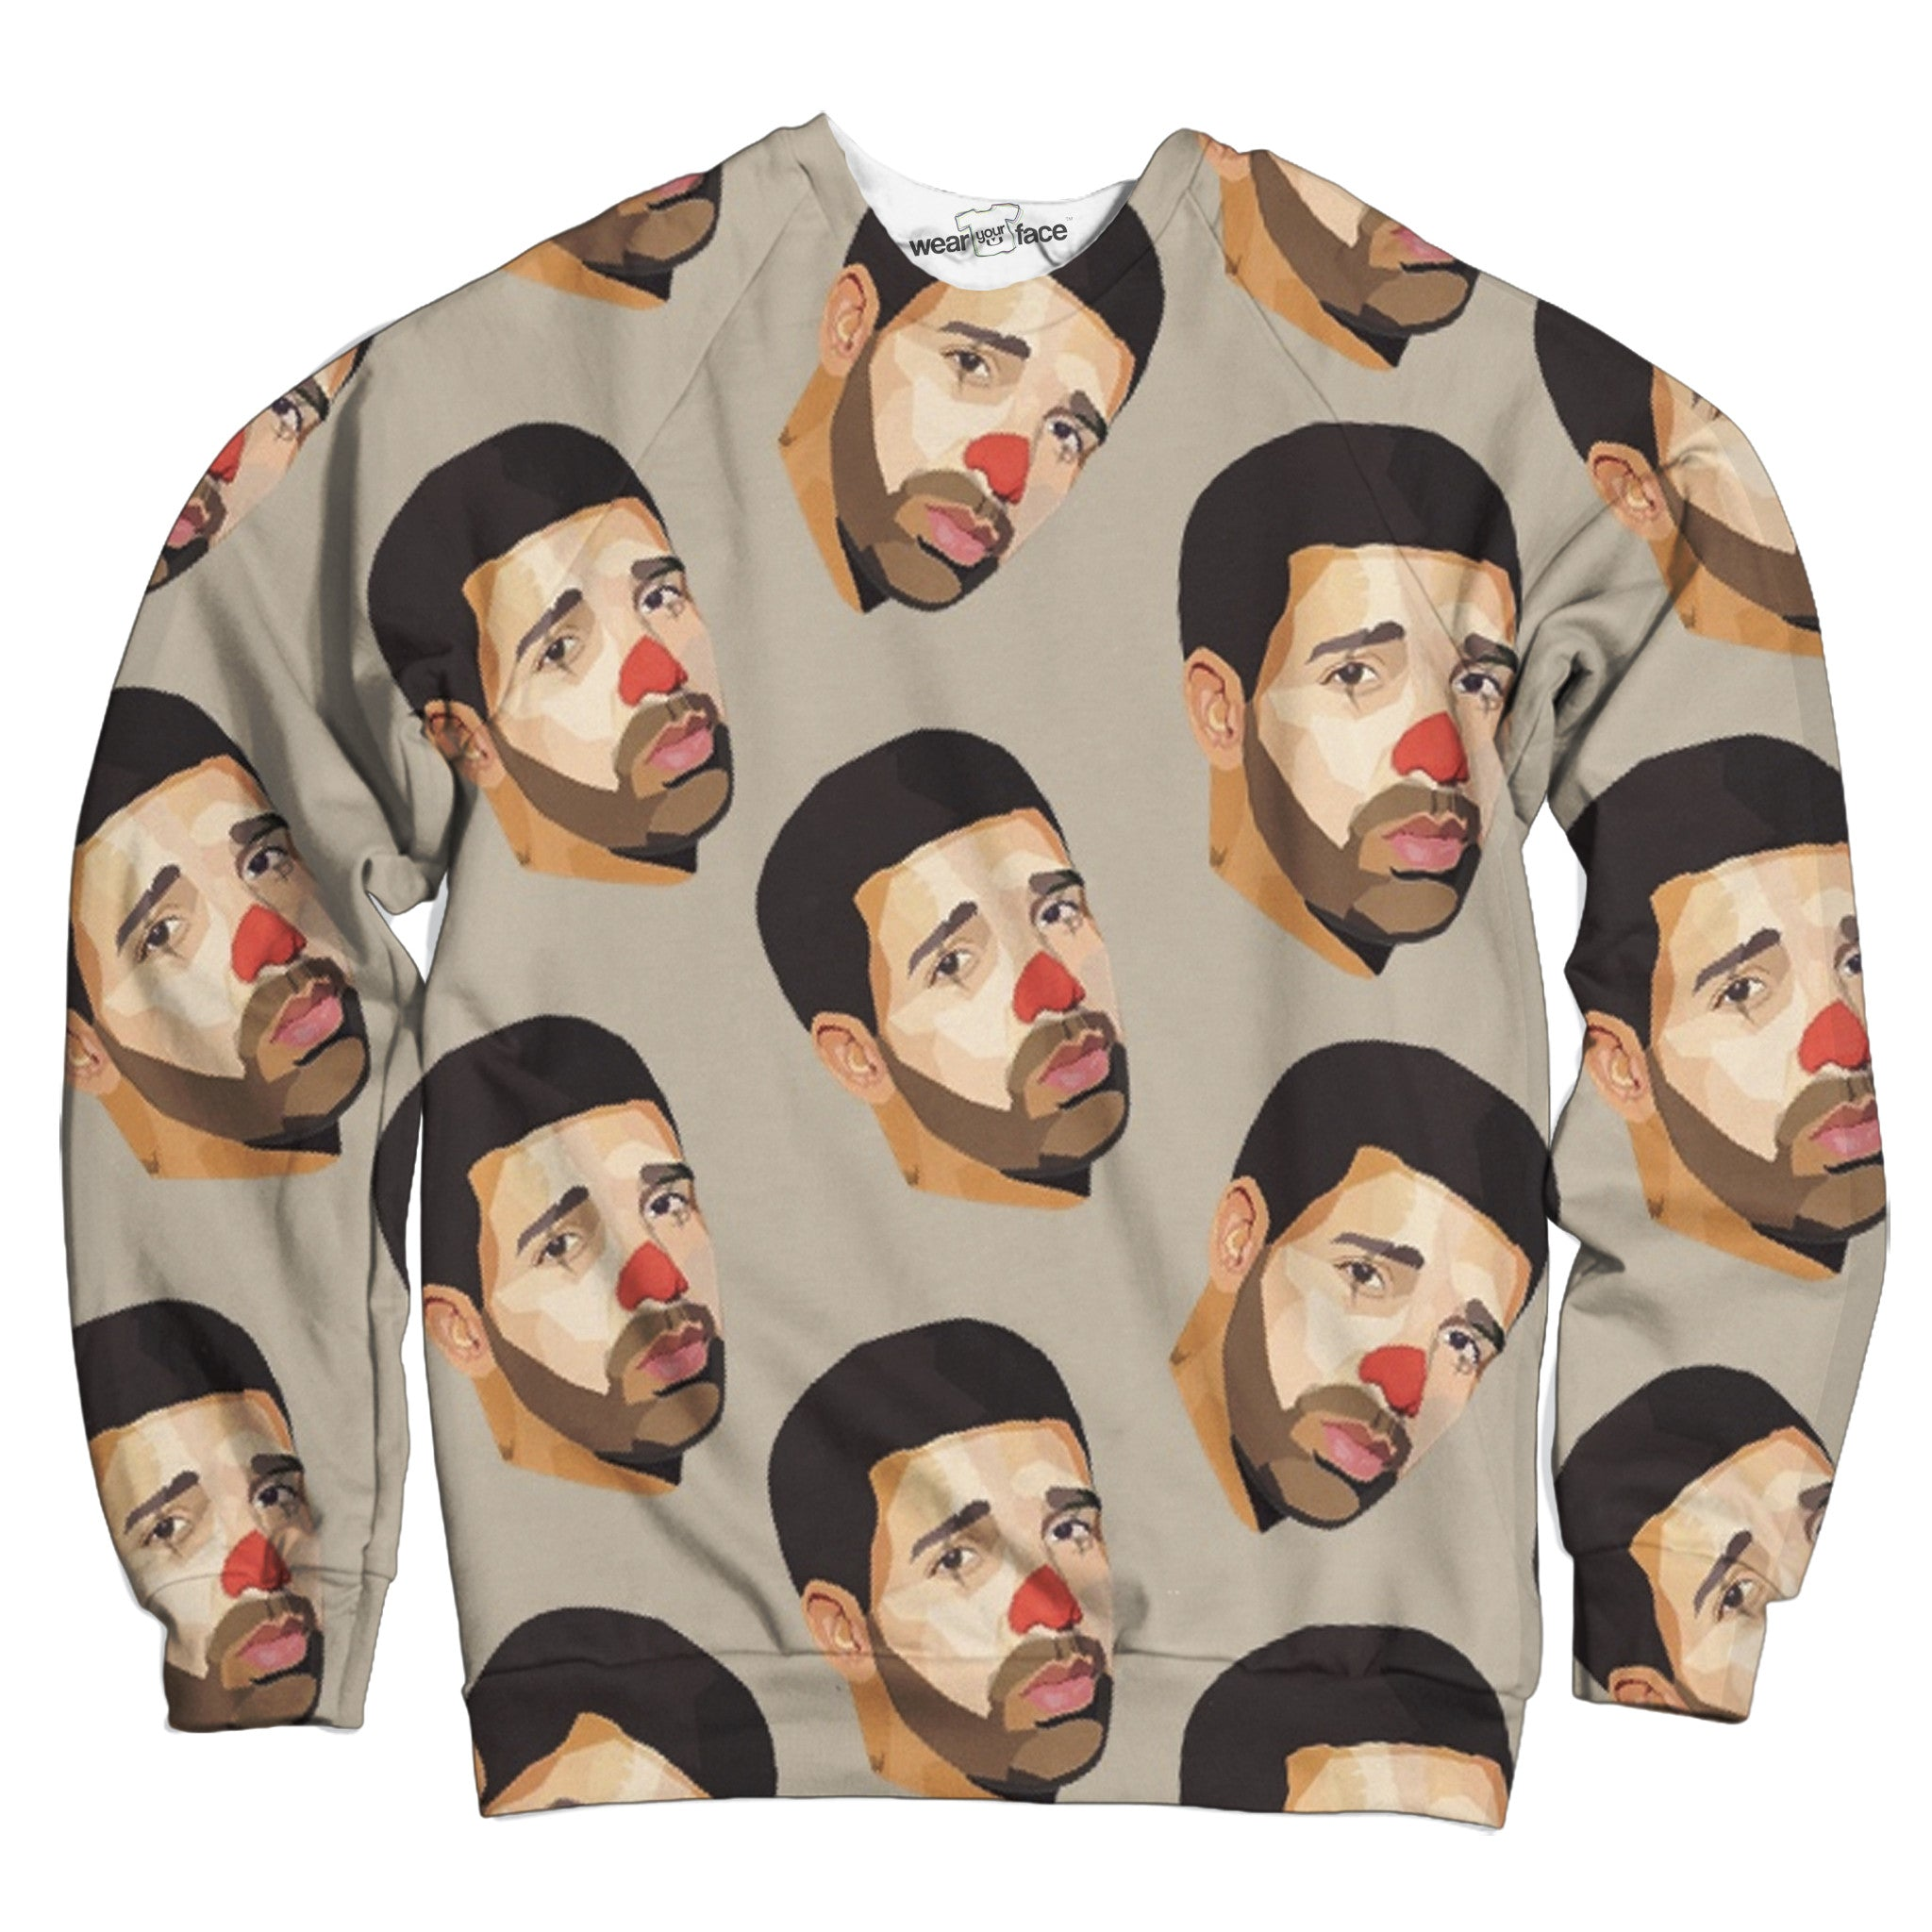 The Emo Drake Sweatshirt